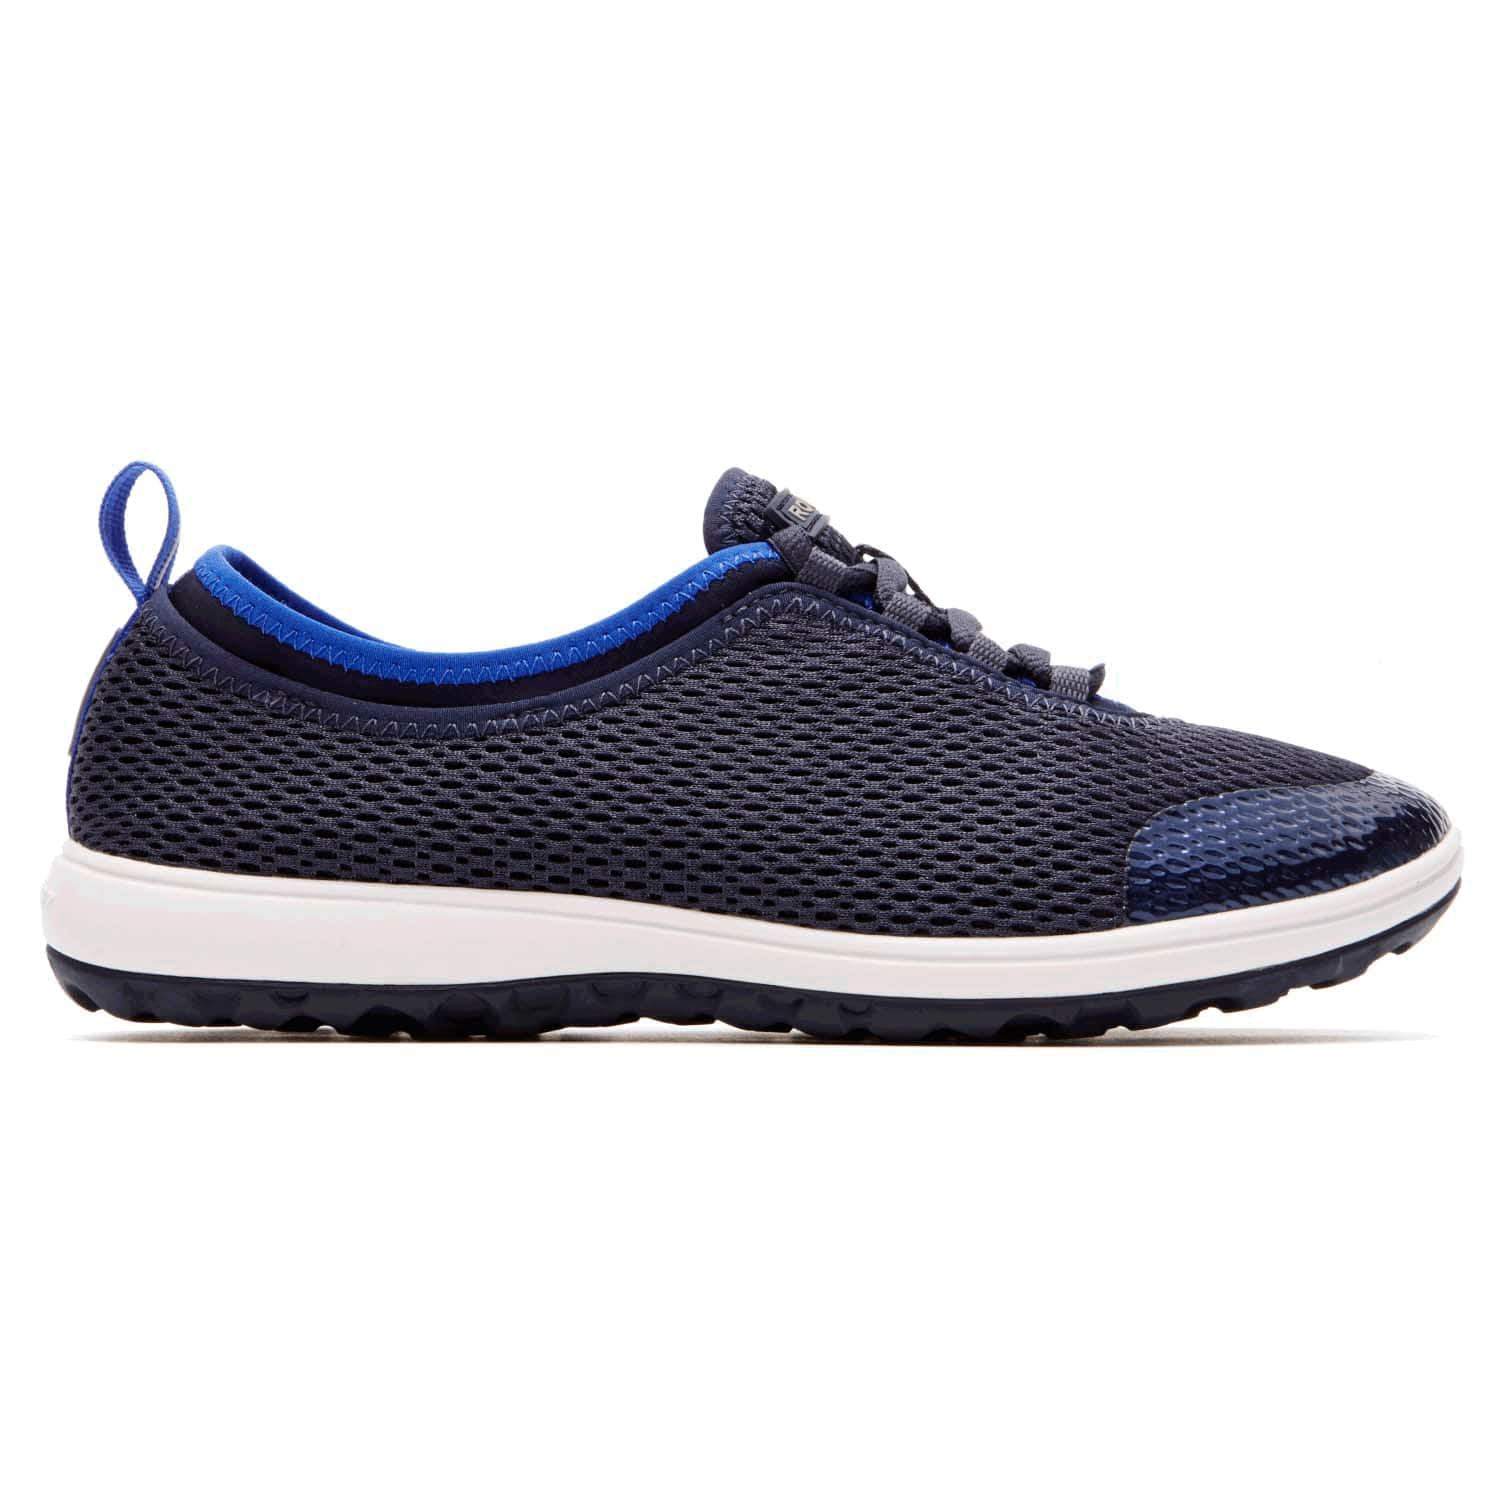 WALK360 Washable Laceup for $27.58